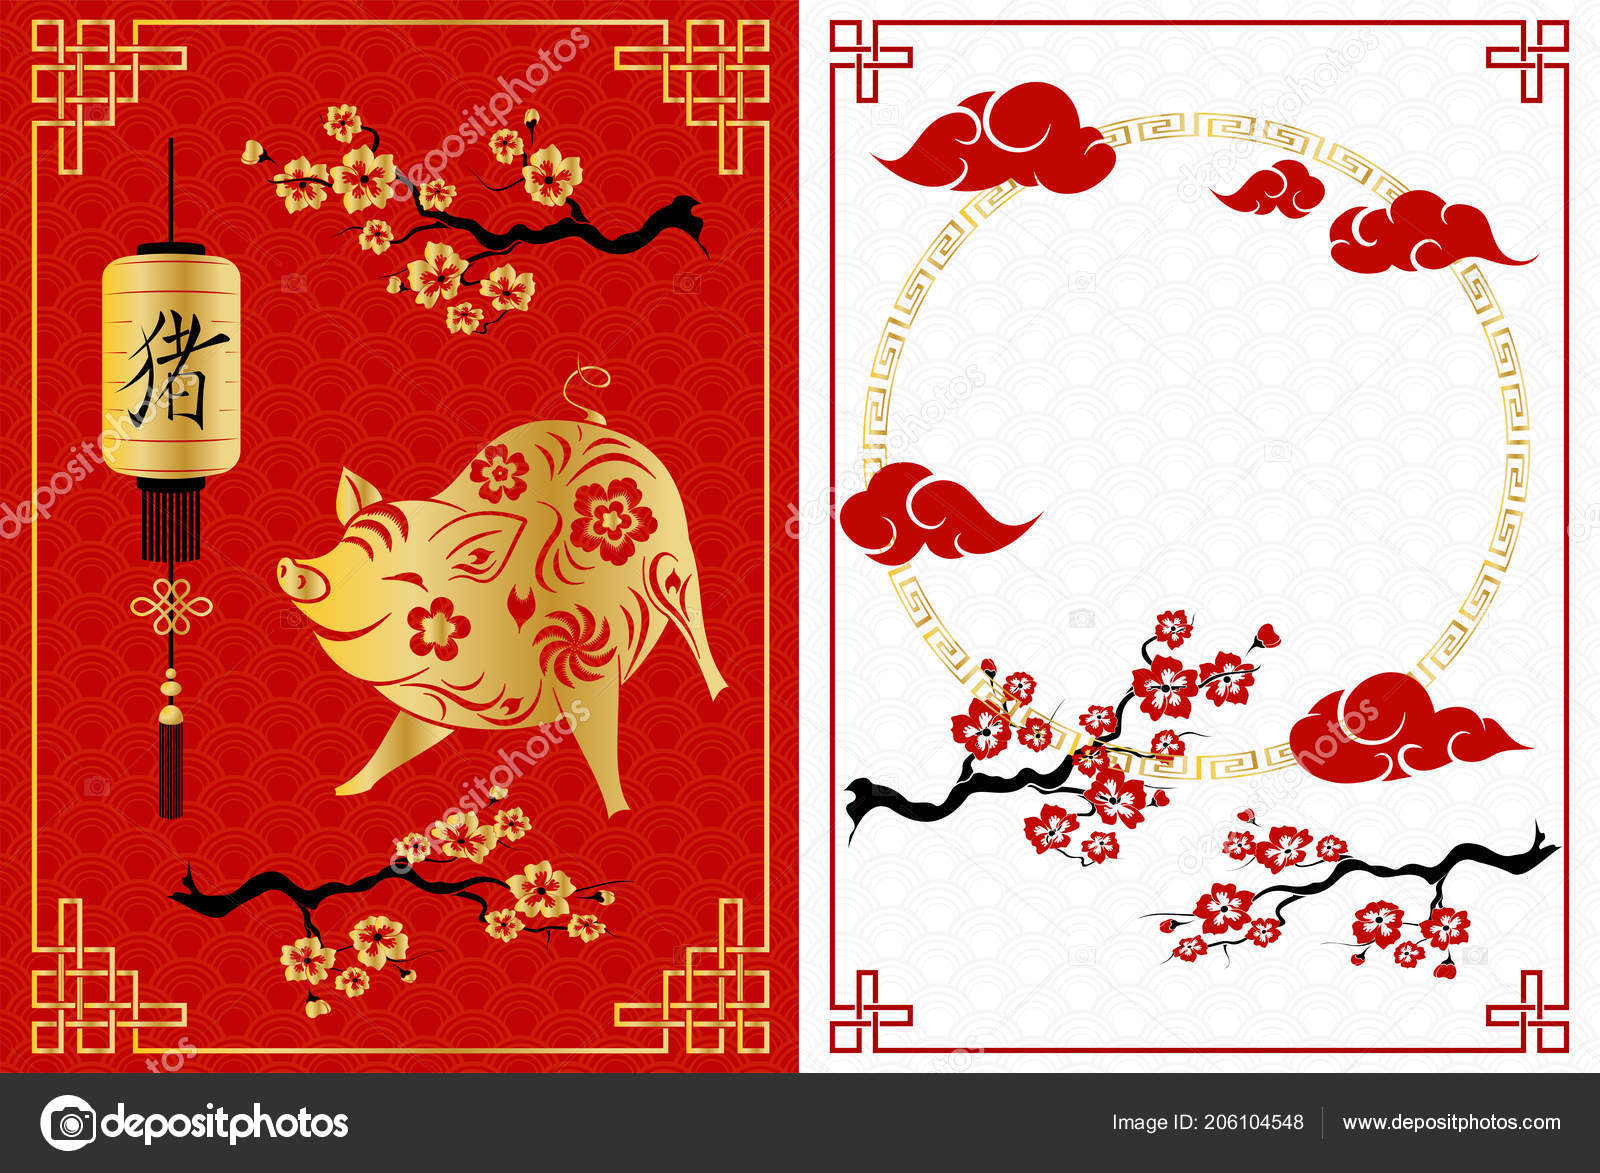 Cards for the Chinese New Year 2019 30